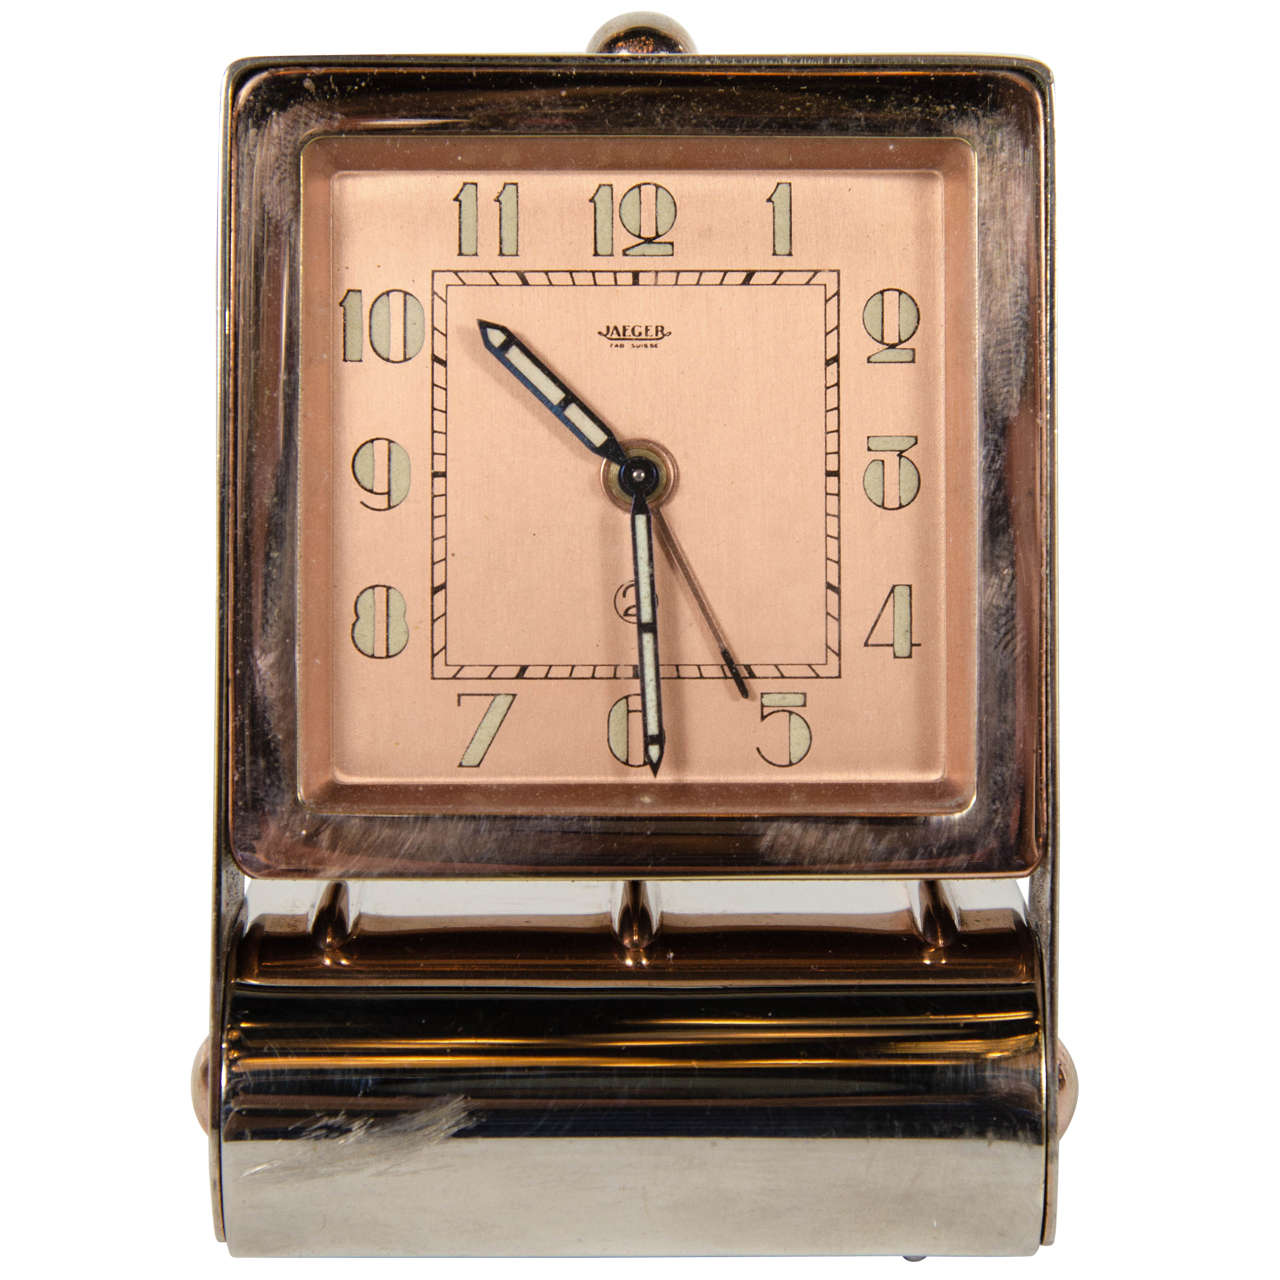 Art deco rose gold table or travel alarm clock at 1stdibs for Deco maison rose gold